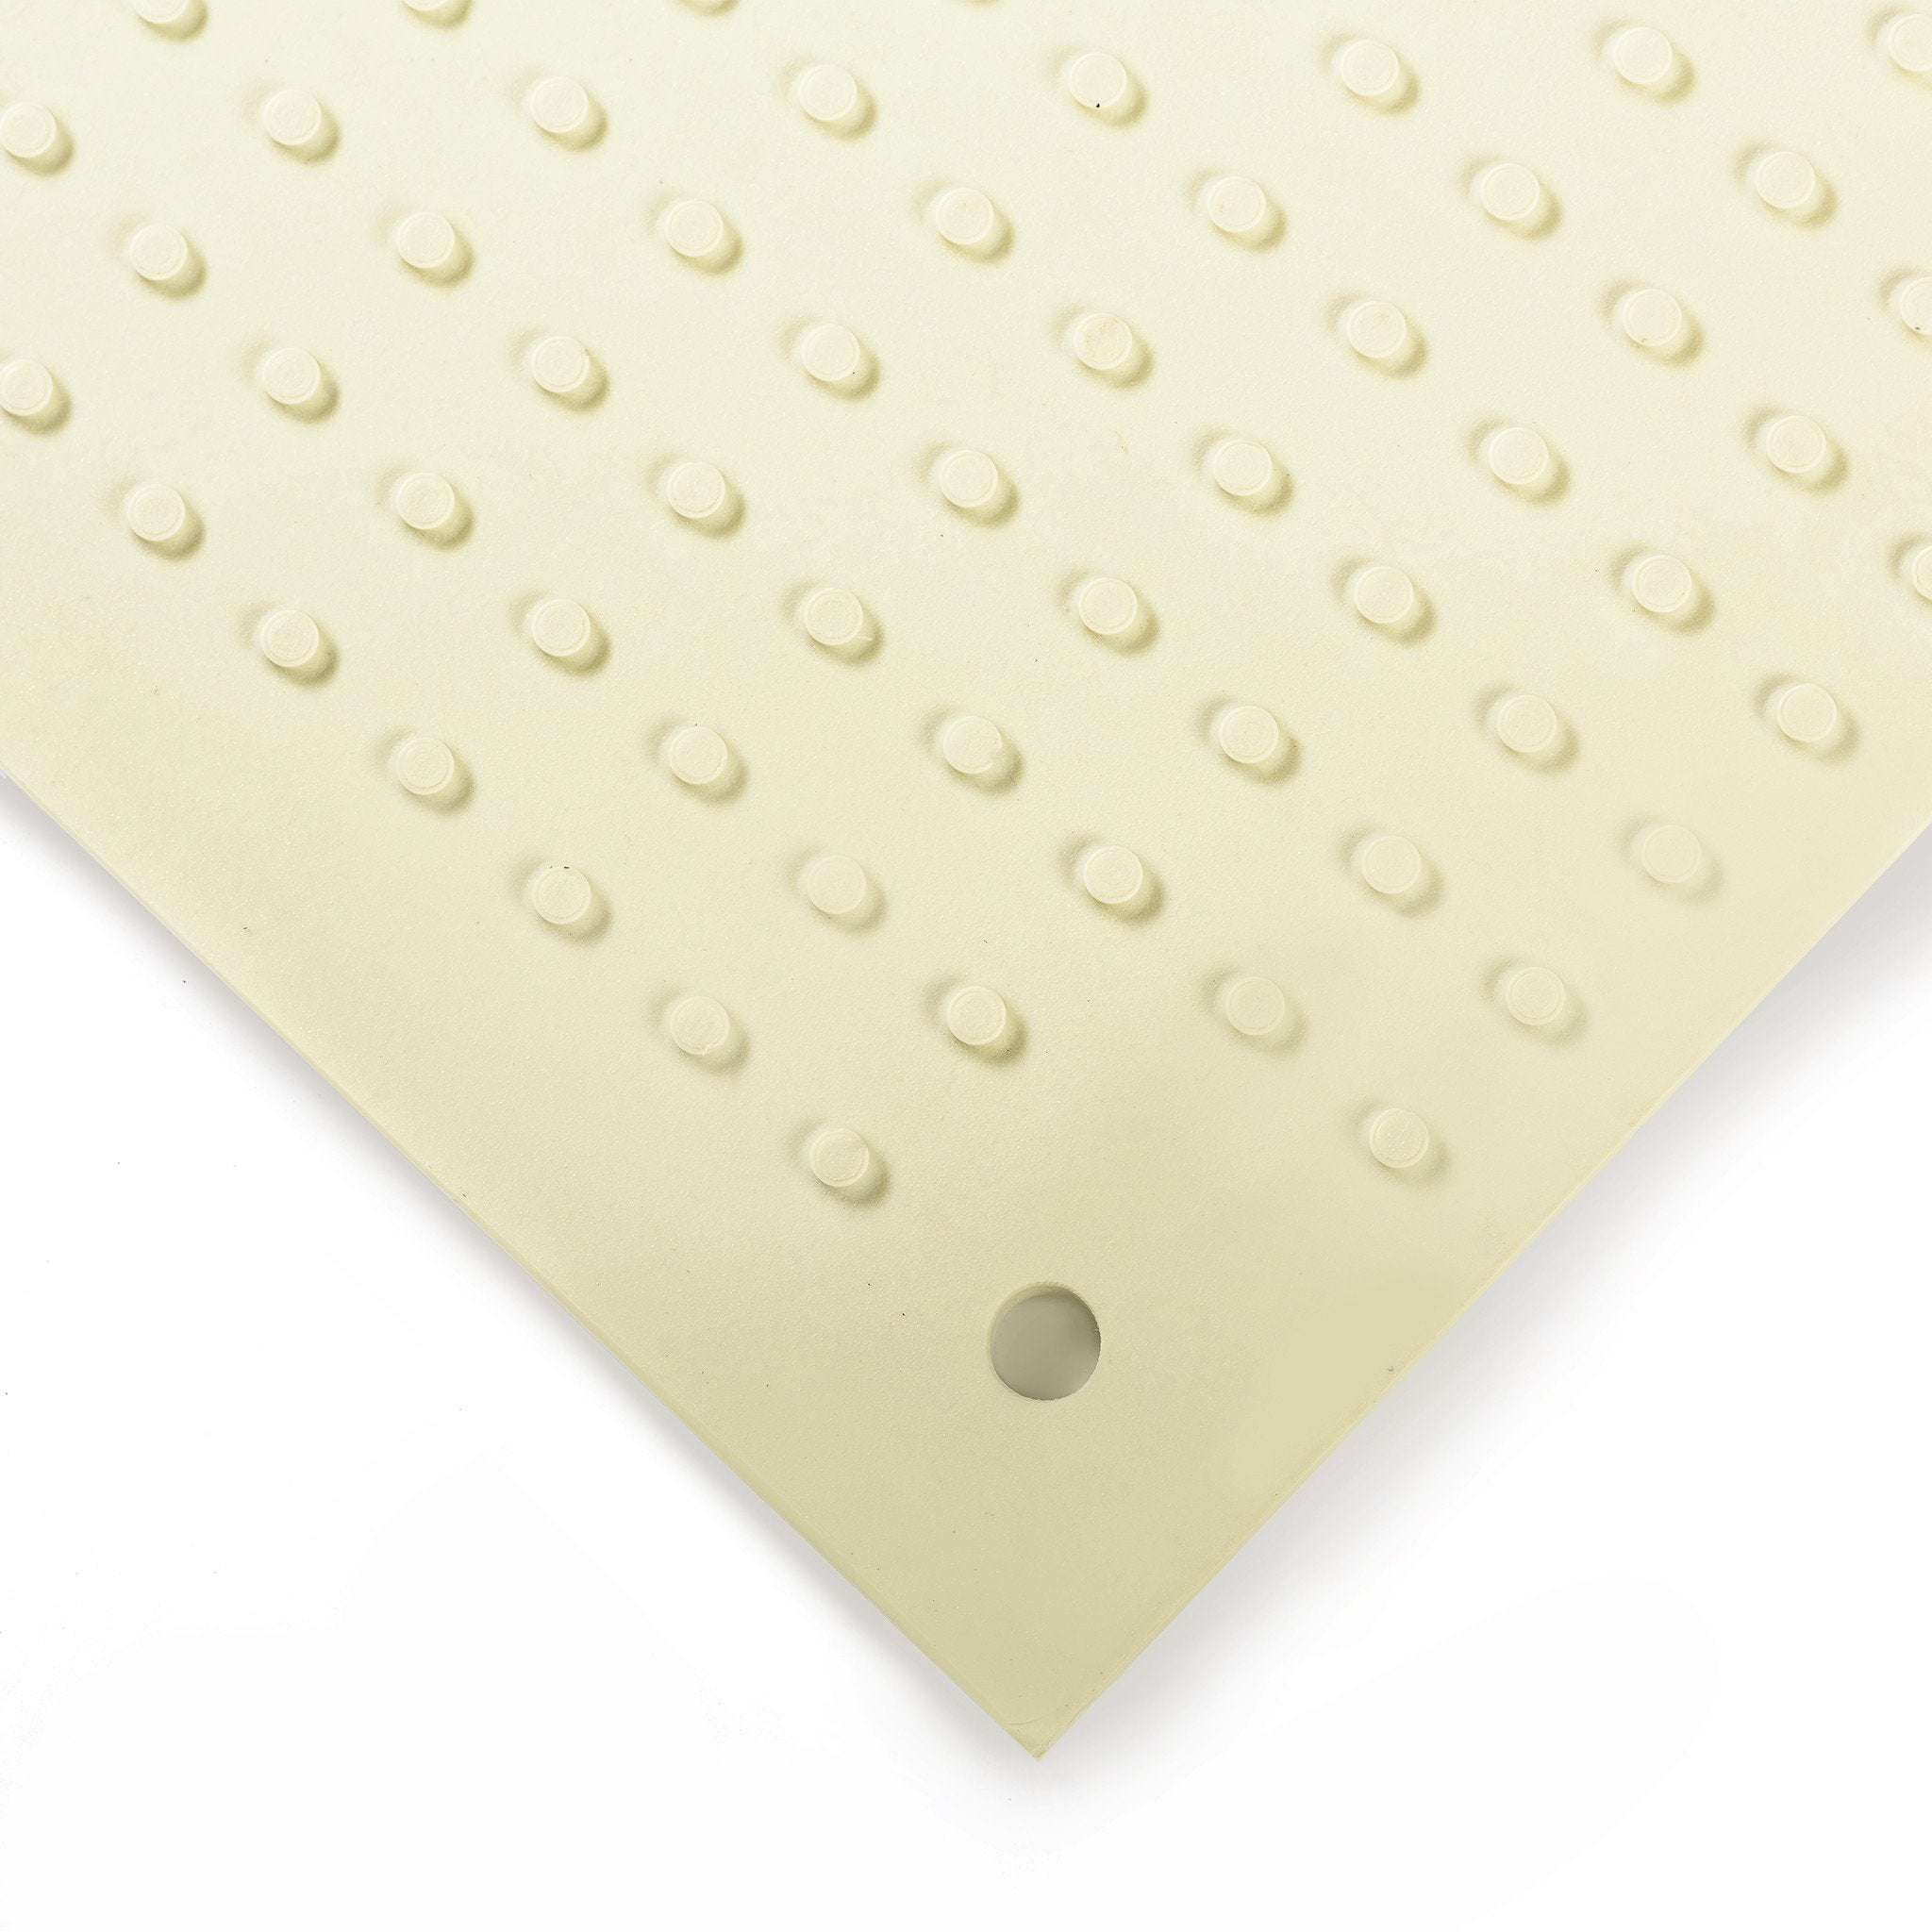 Checkers Trakmat Floor Panel